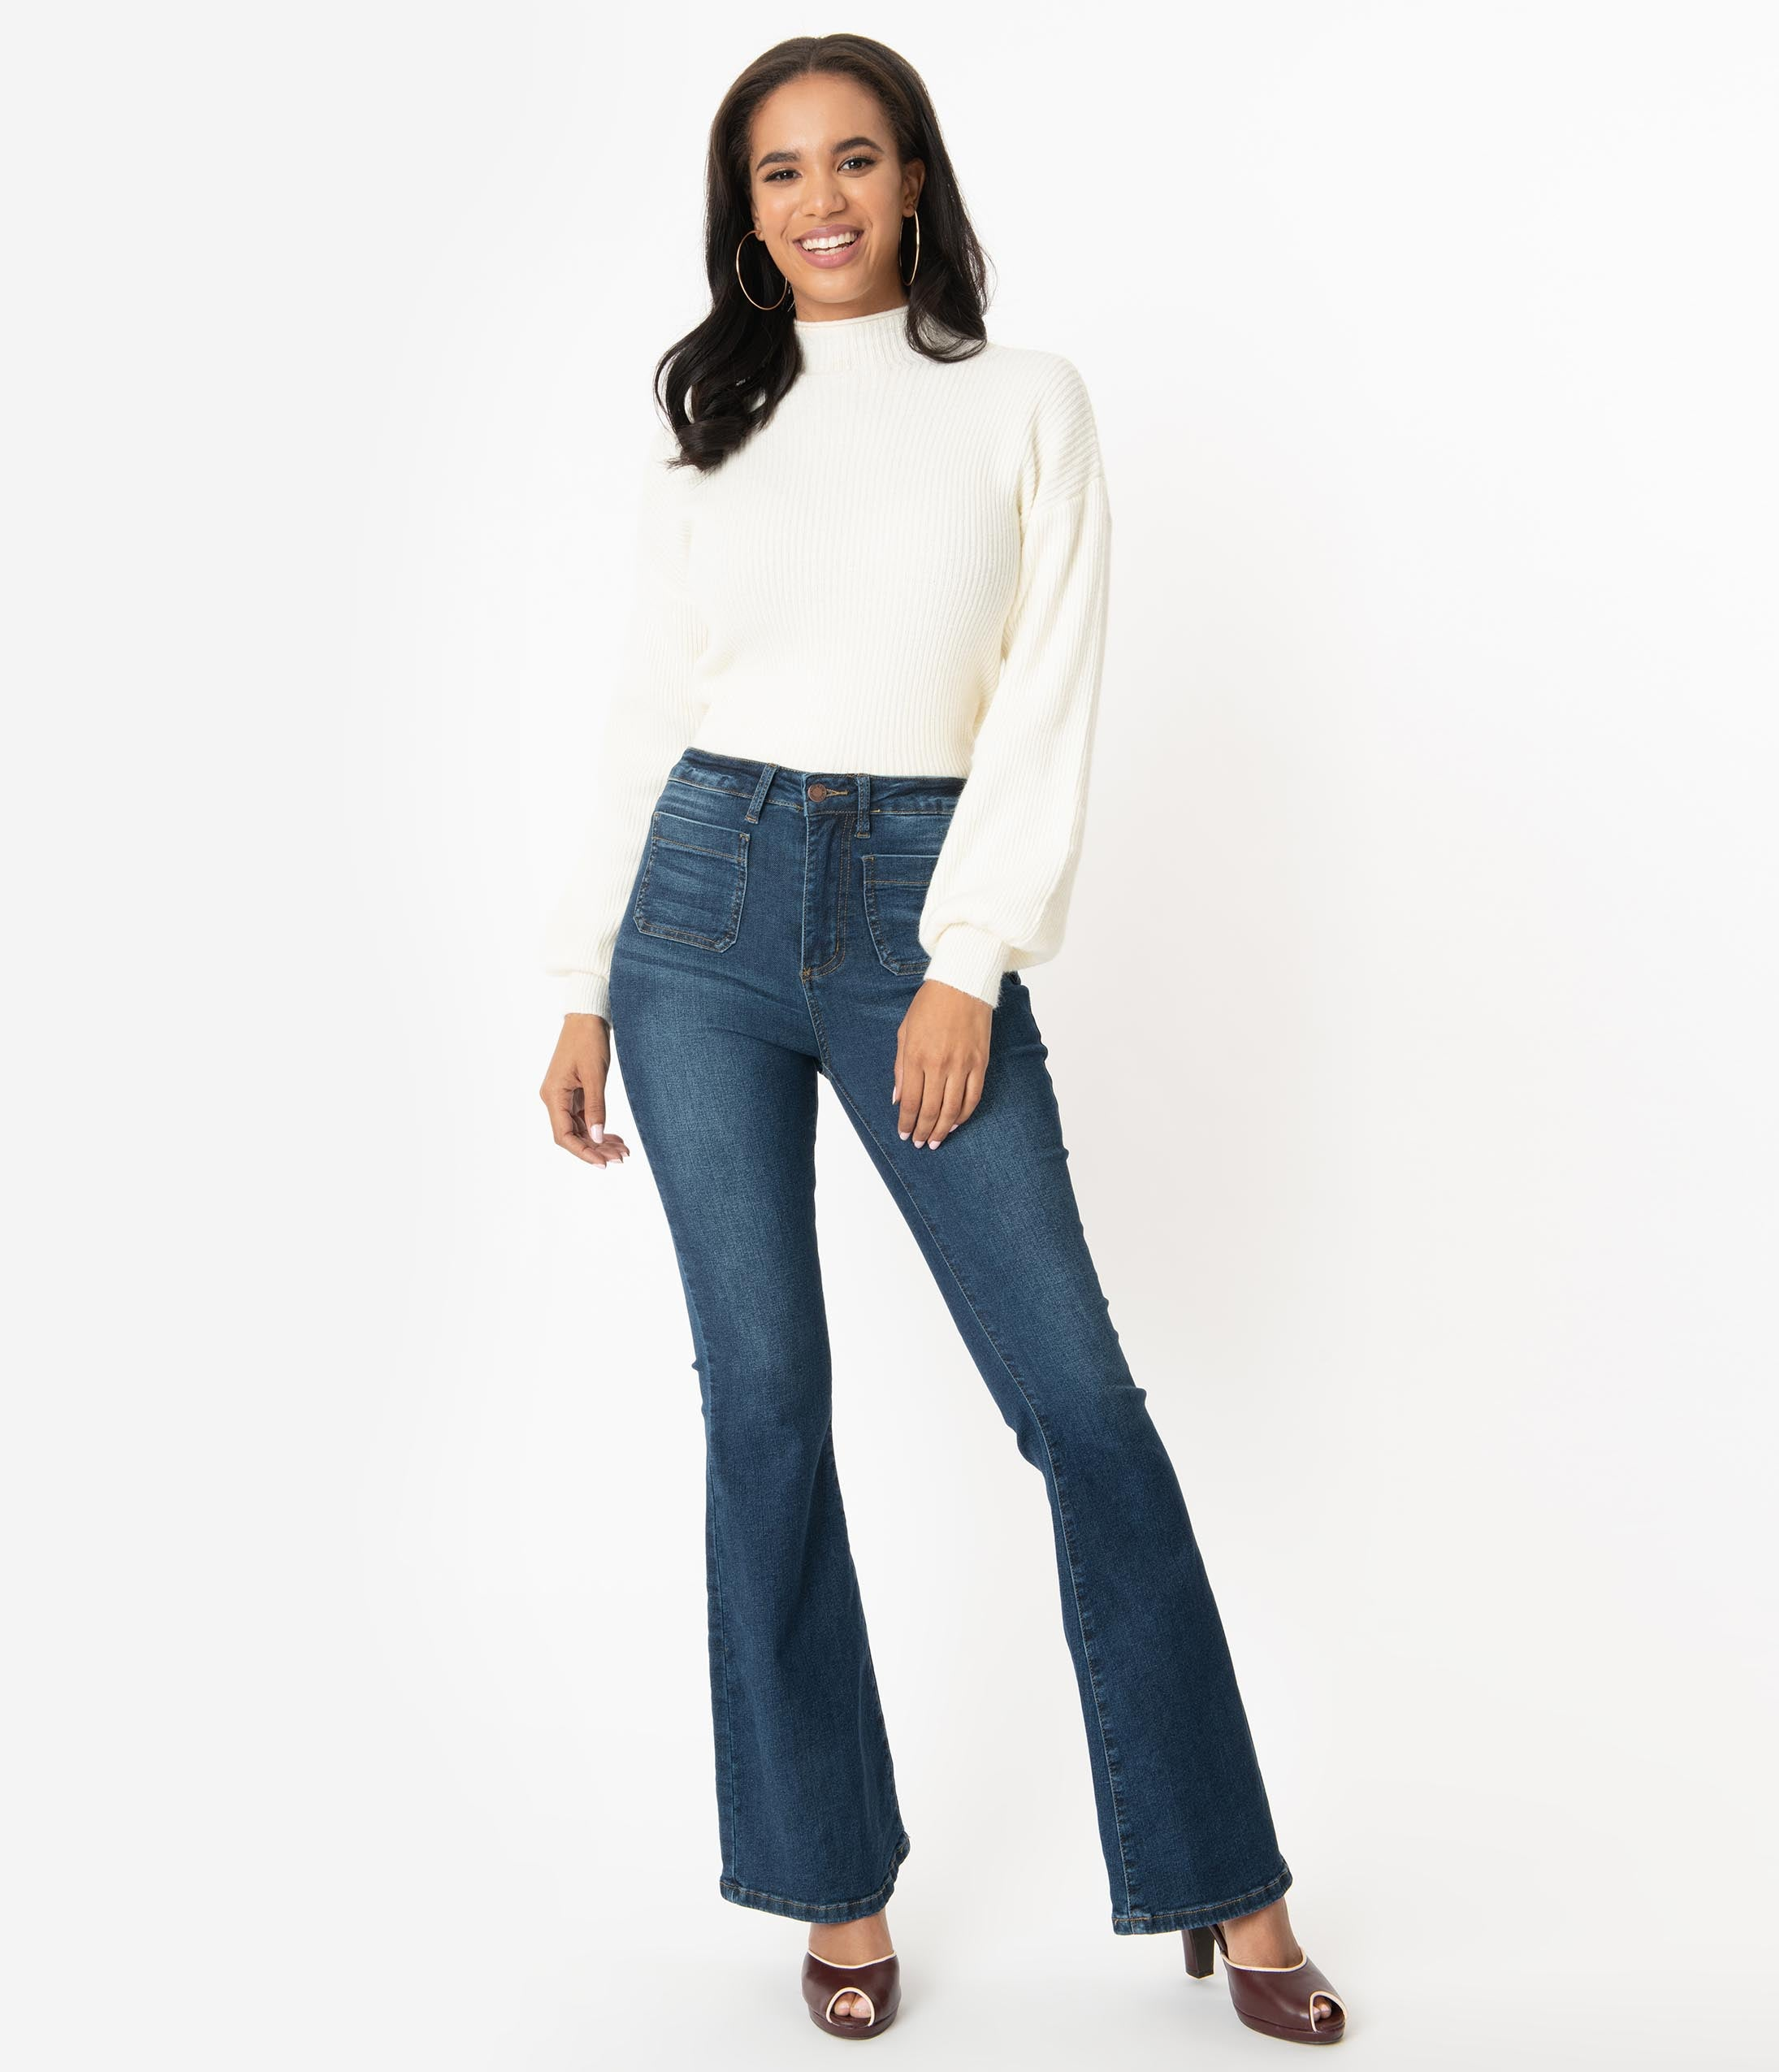 70s Outfits – 70s Style Ideas for Women Retro Blue Denim Bell Bottom Jeans $58.00 AT vintagedancer.com